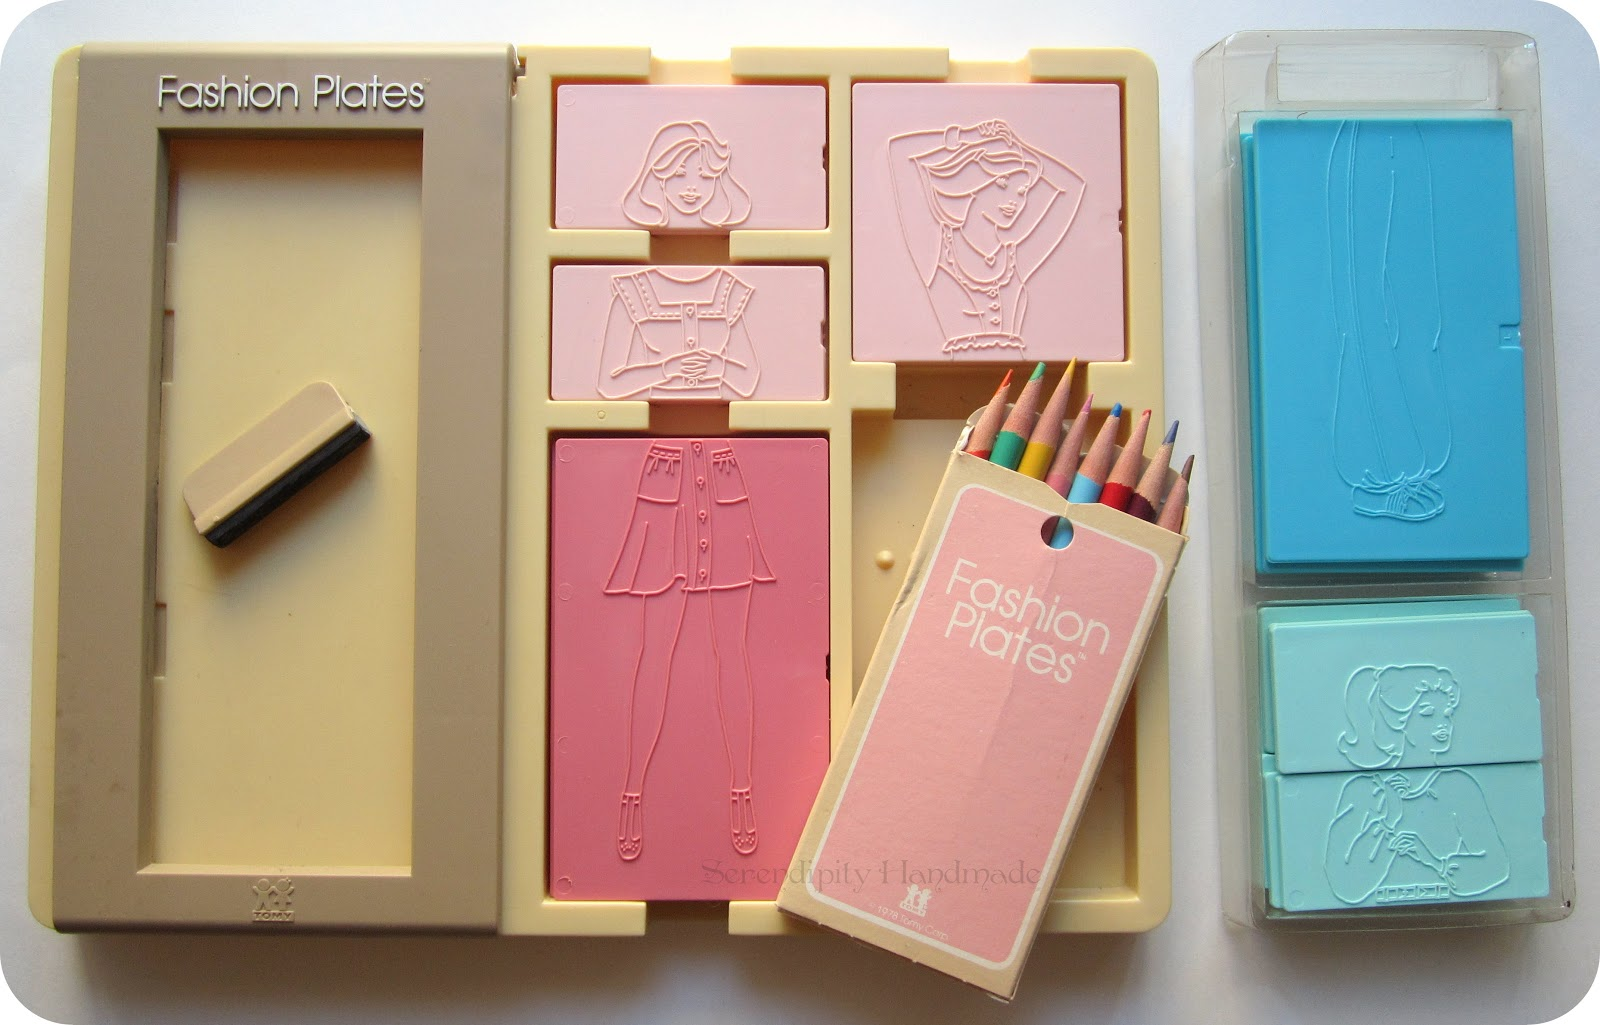 Barbie Fashion Plates Toy Fashion Plates was first